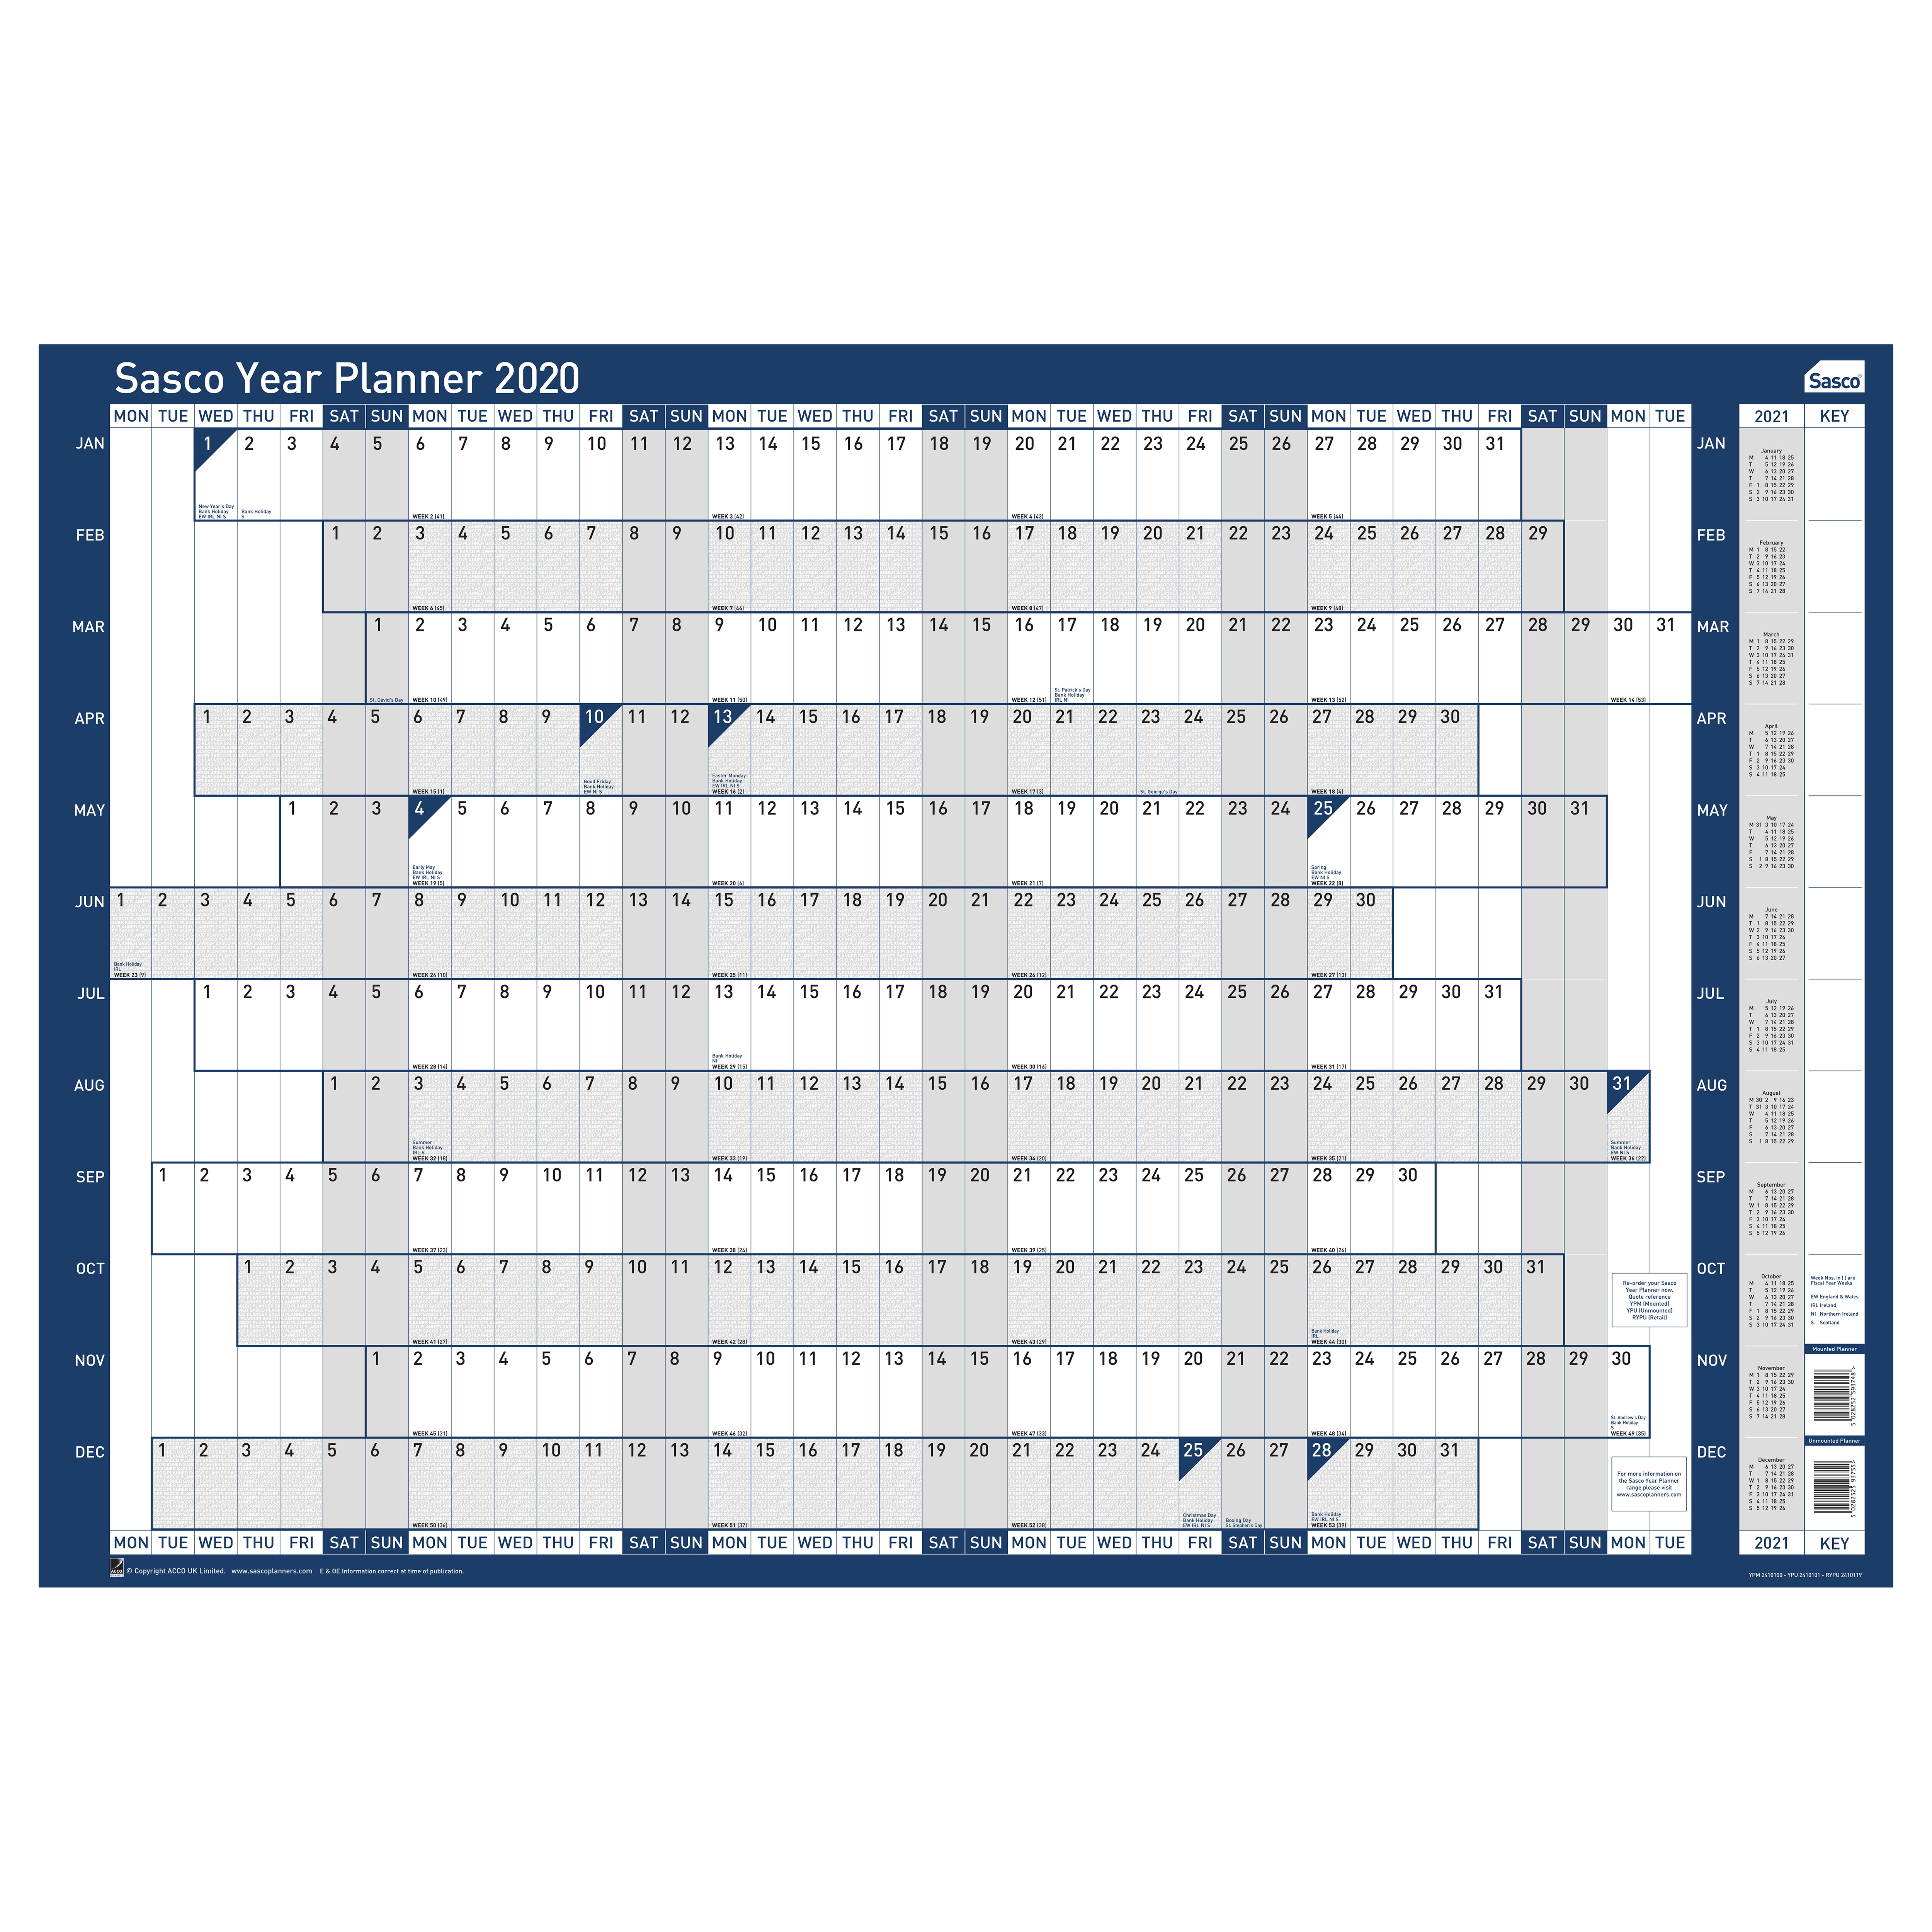 Planners Sasco 2020 Year Planner Mounted Landscape 915x610mm Ref 2410100 REDEMPTION Jul-Sep19